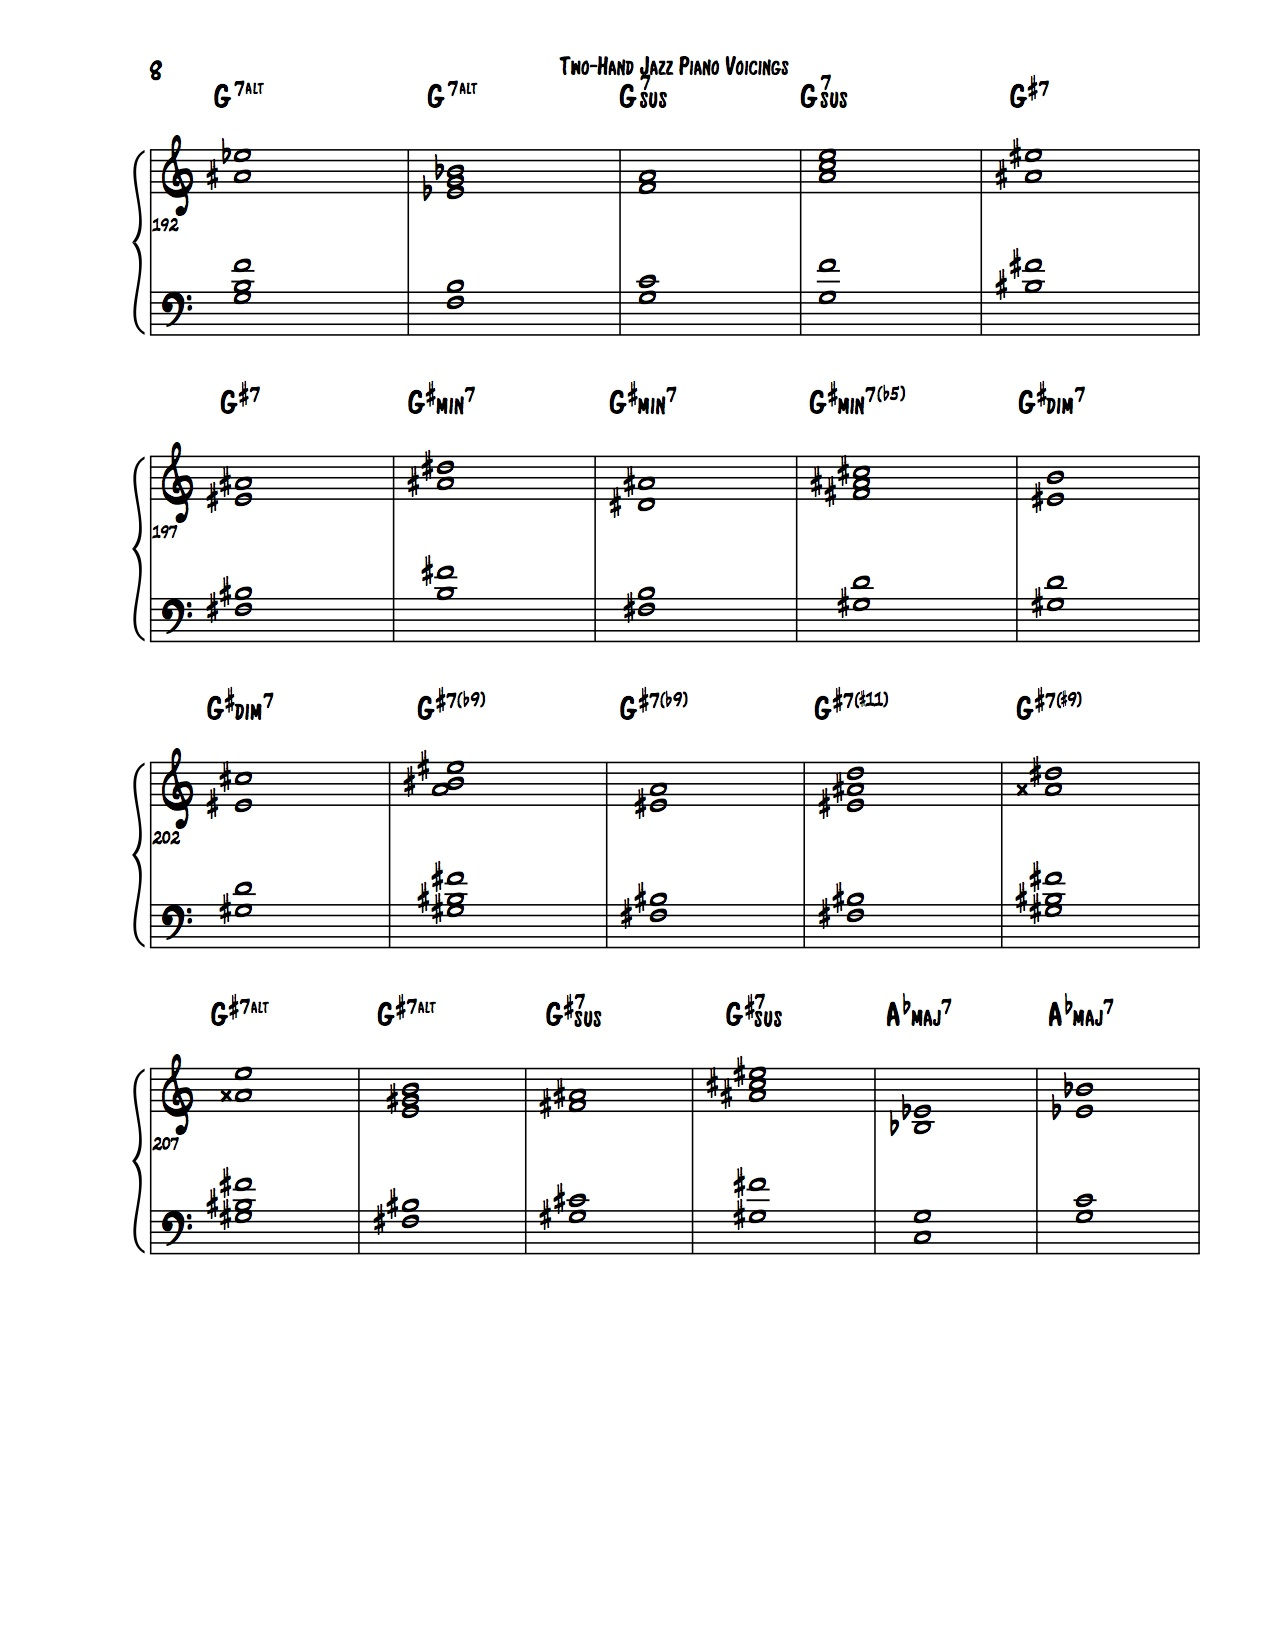 Encyclopedia of two hand jazz piano voicings learn jazz standards encyclopedia of two hand voicings 8 hexwebz Images